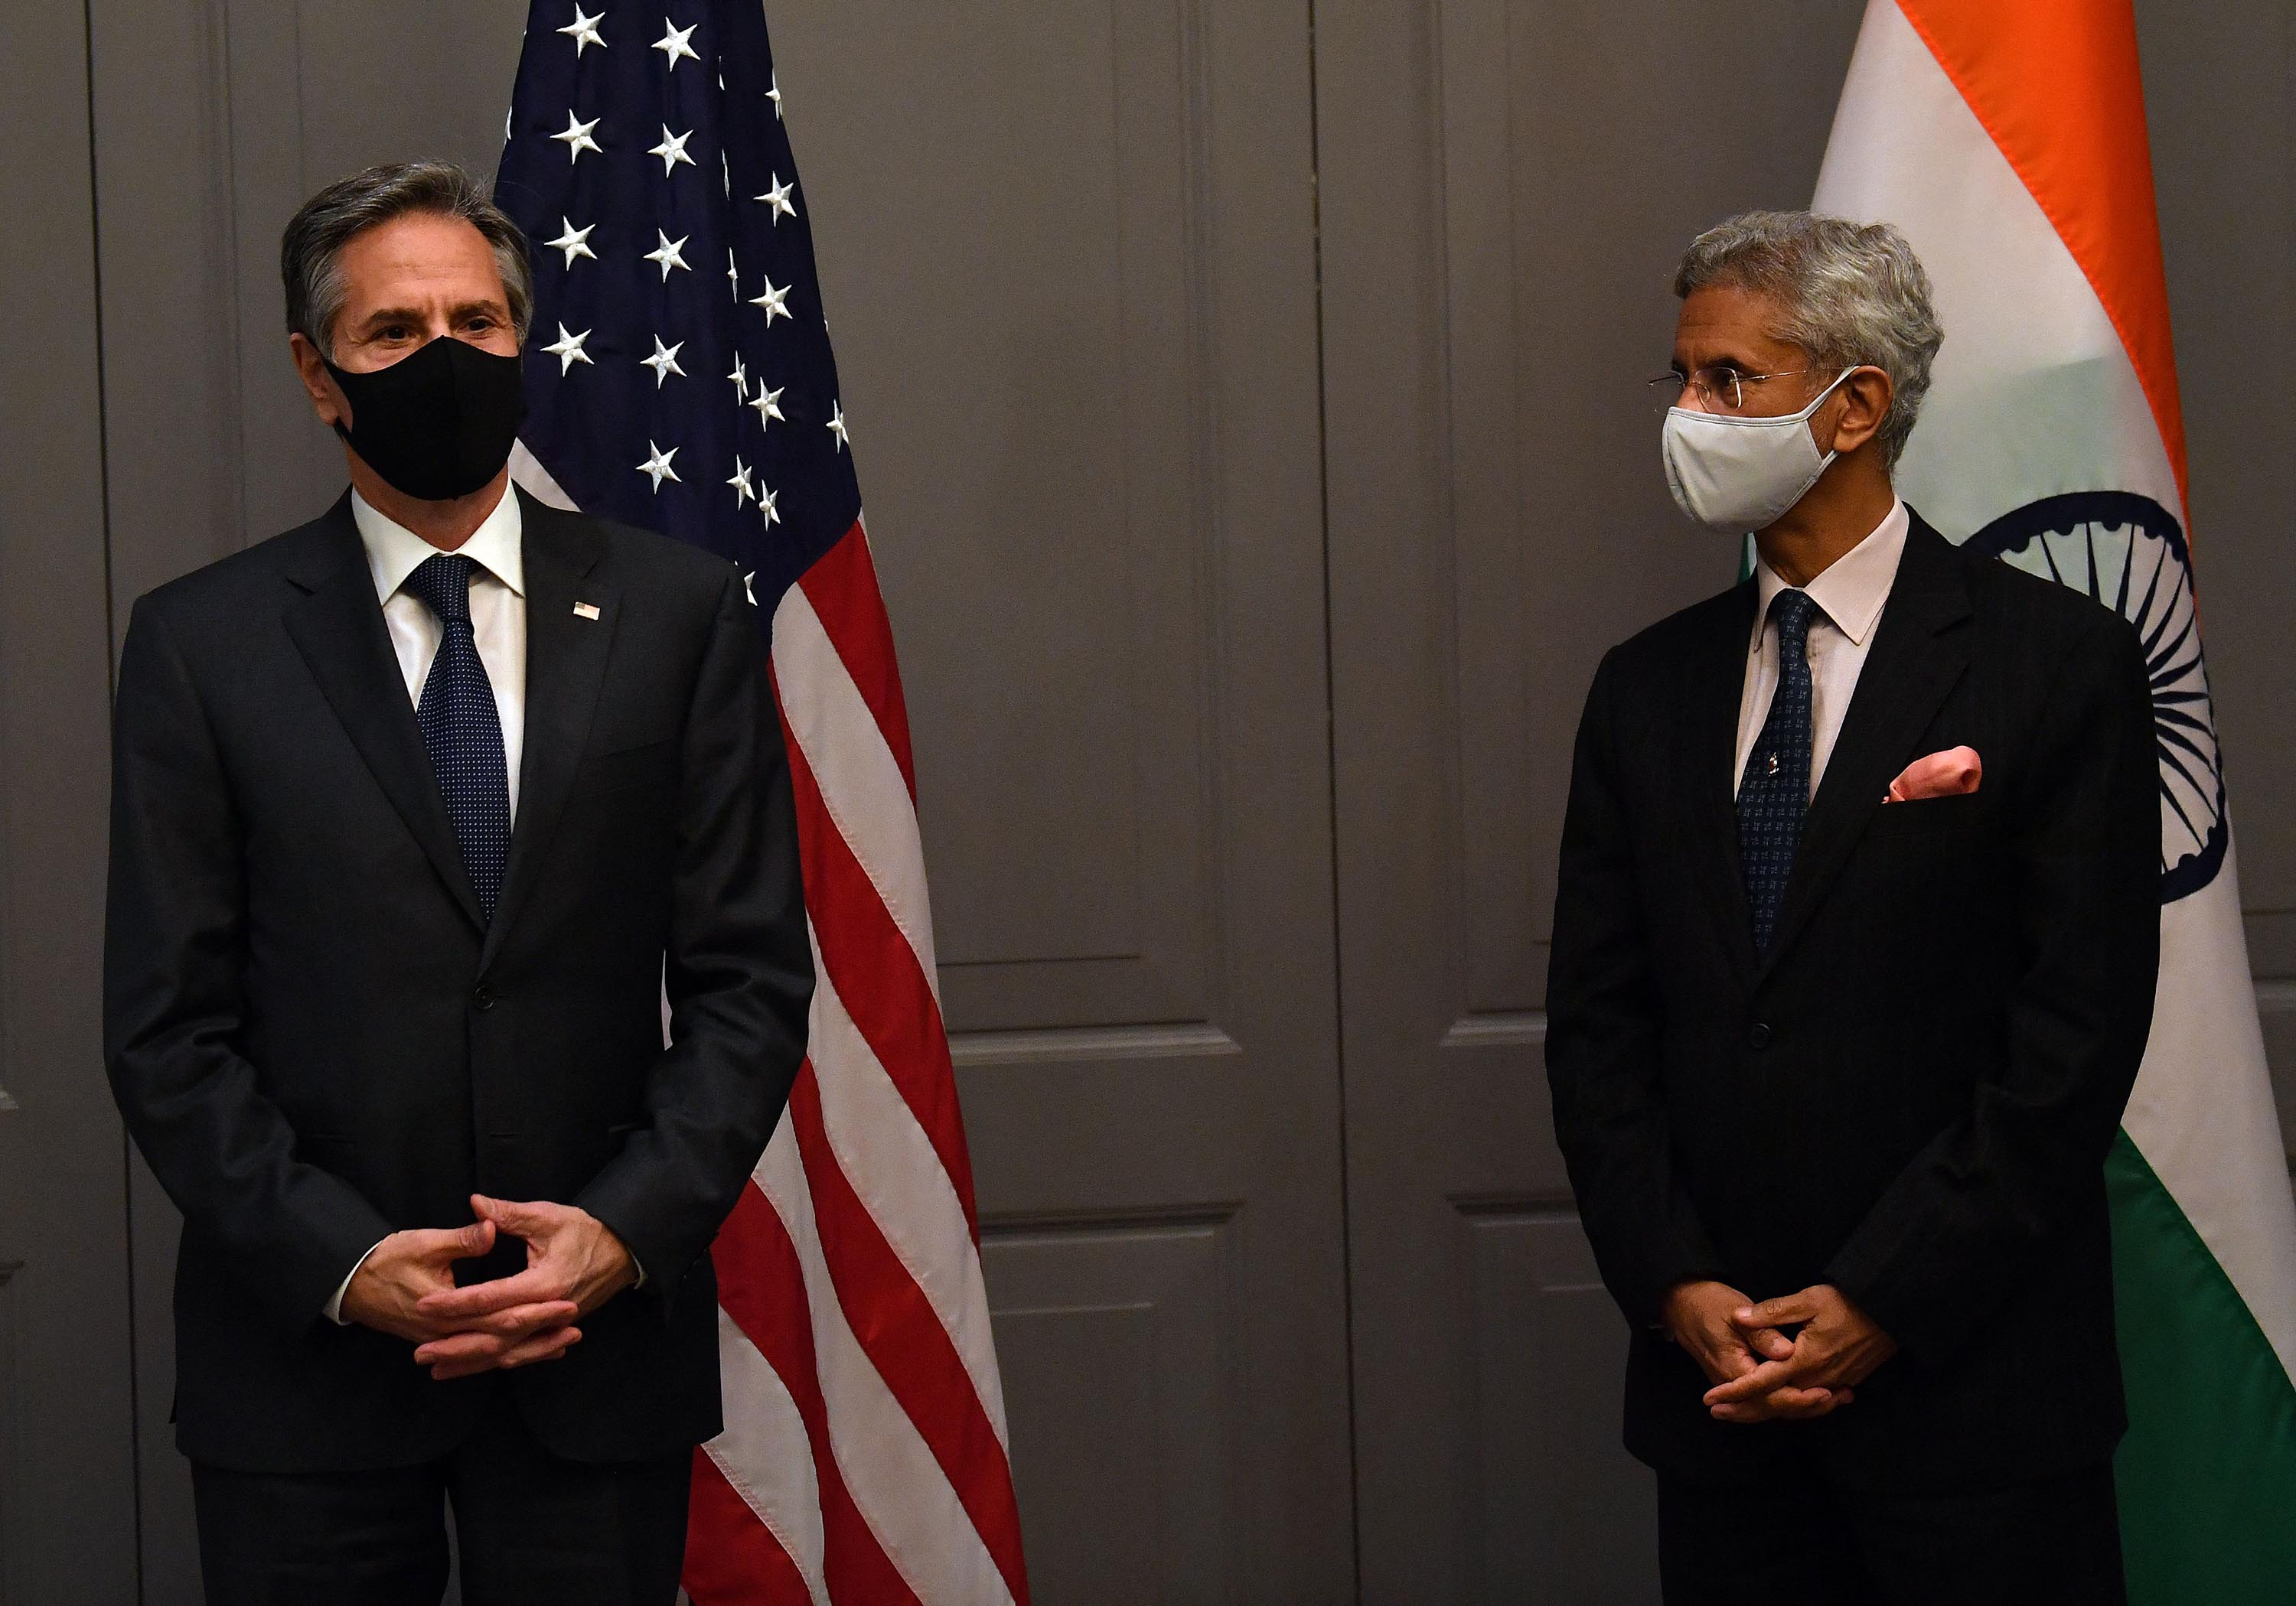 India's External Affairs MinisterDr. S. Jaishankar, right, attends a press conference with US Secretary of State Antony Blinken following a bilateral meeting in London, on Monday, May 3.